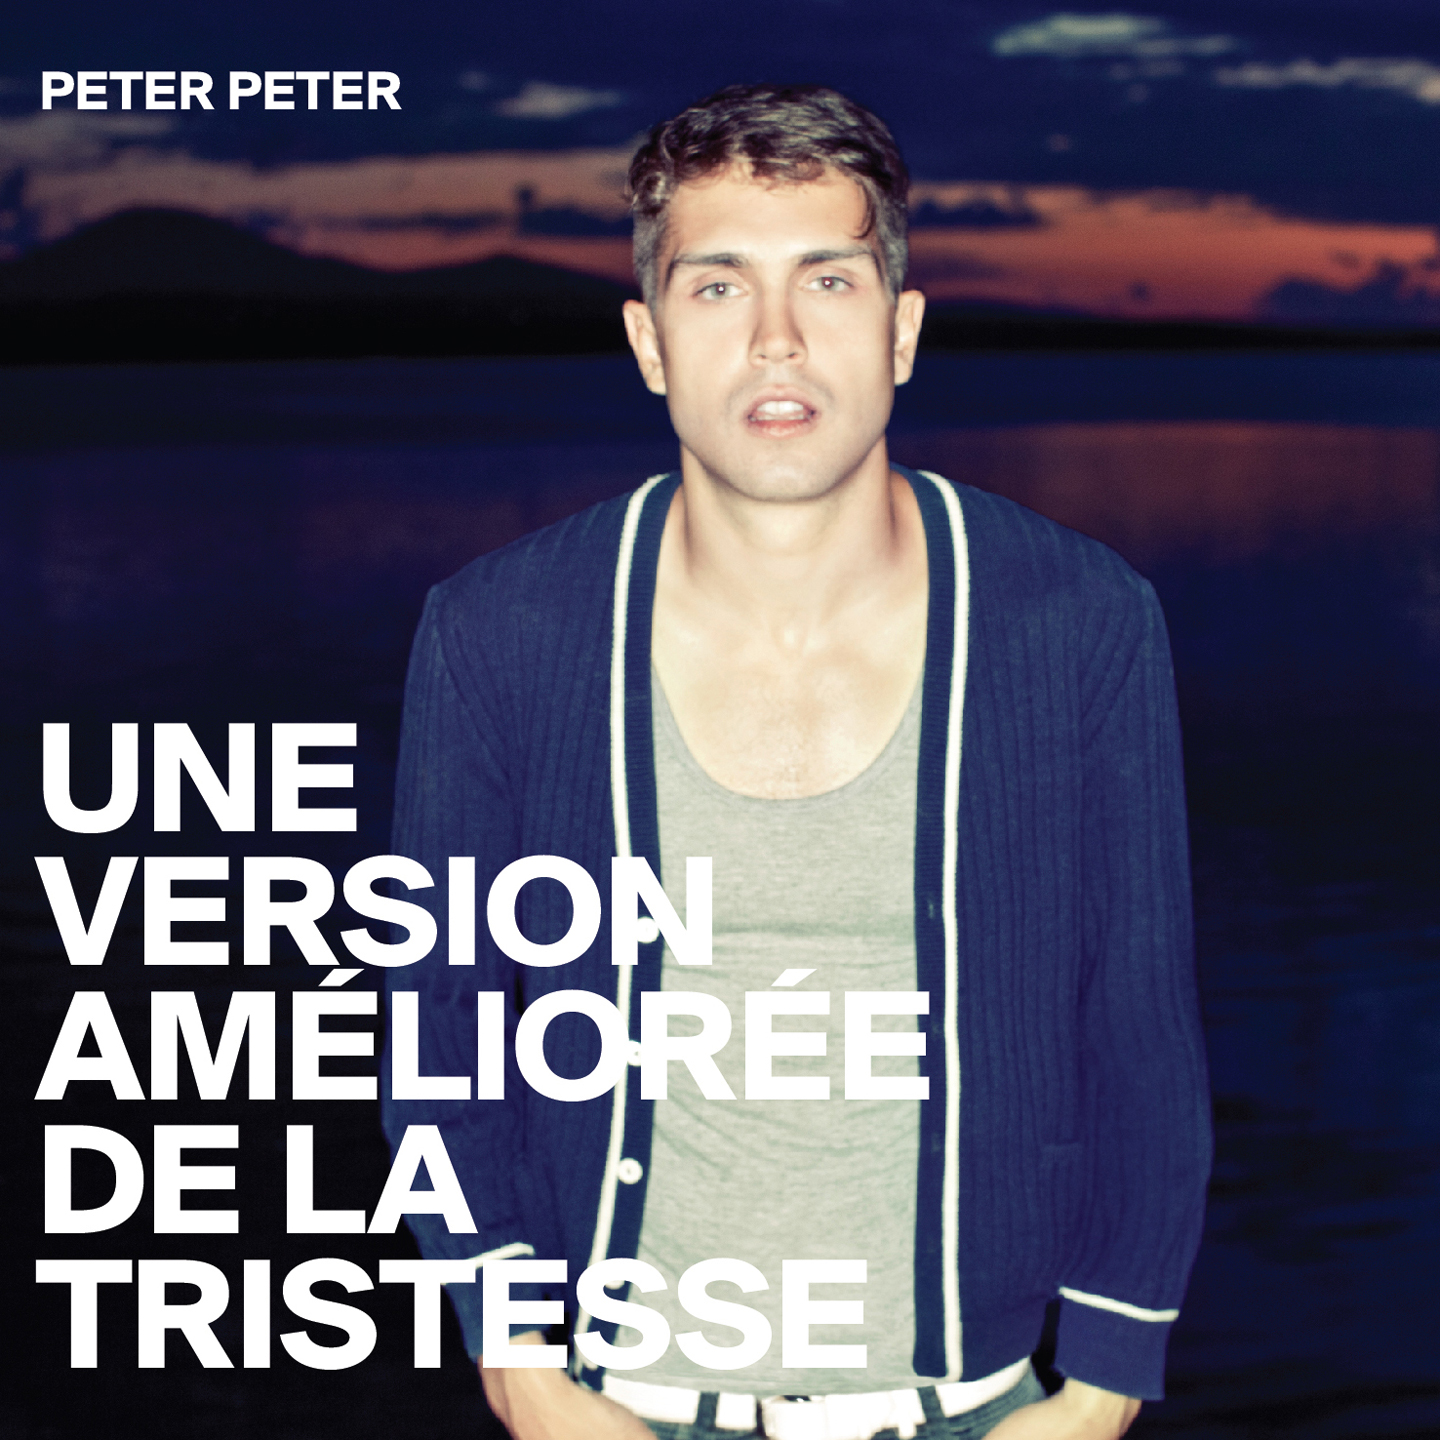 peterpeter-uneversionamelioreedelatristesse